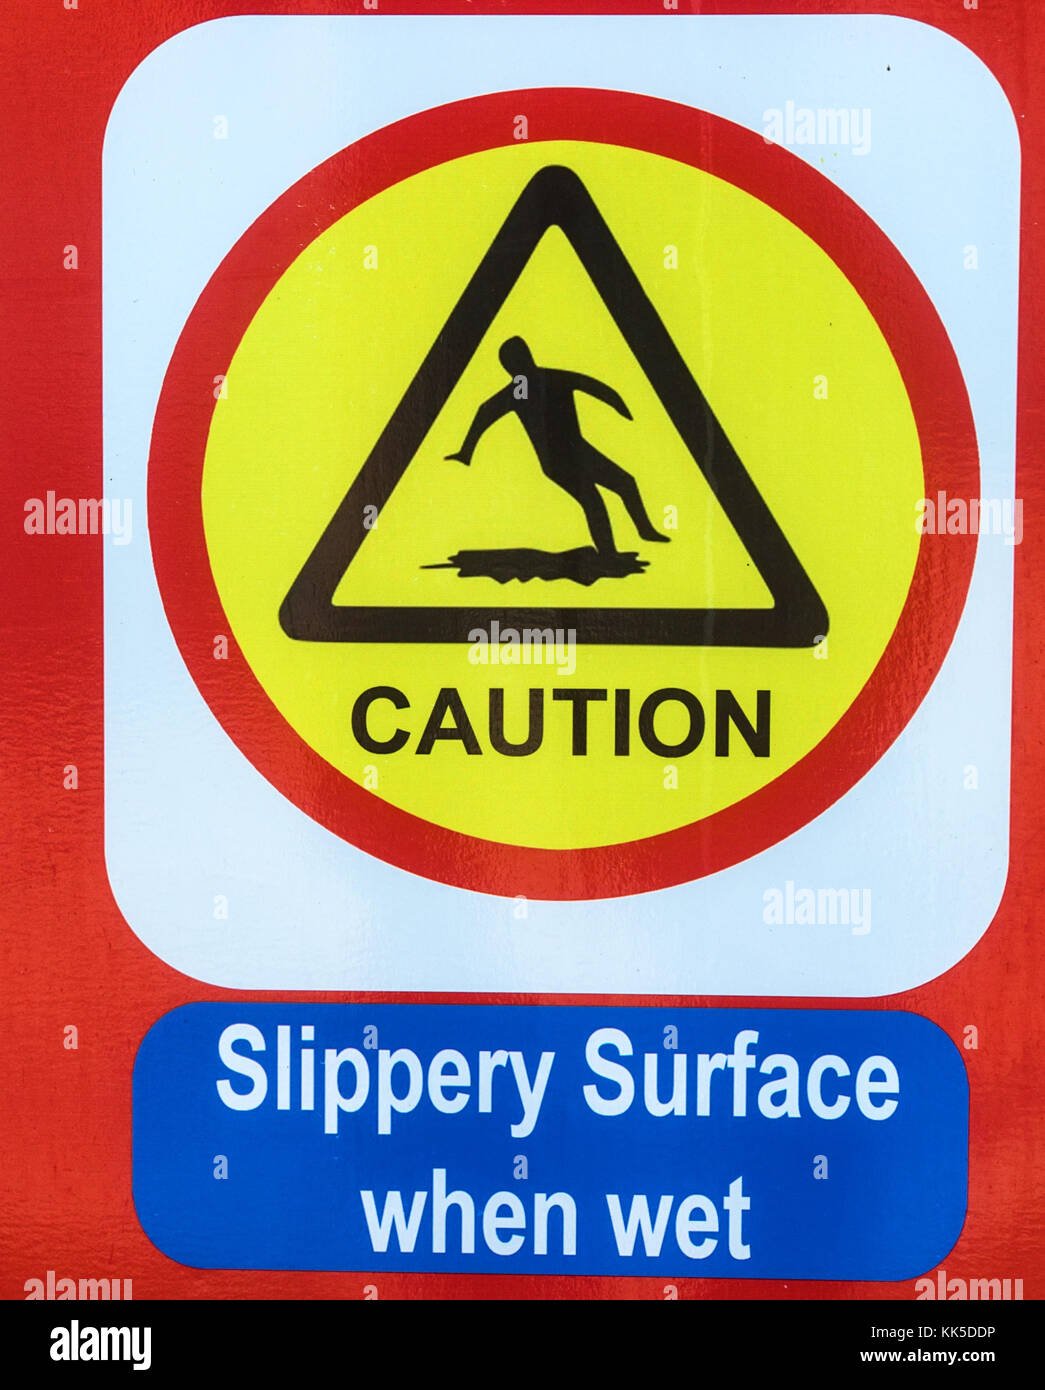 Bright yellow and red sign of slippery surface Stock Photo